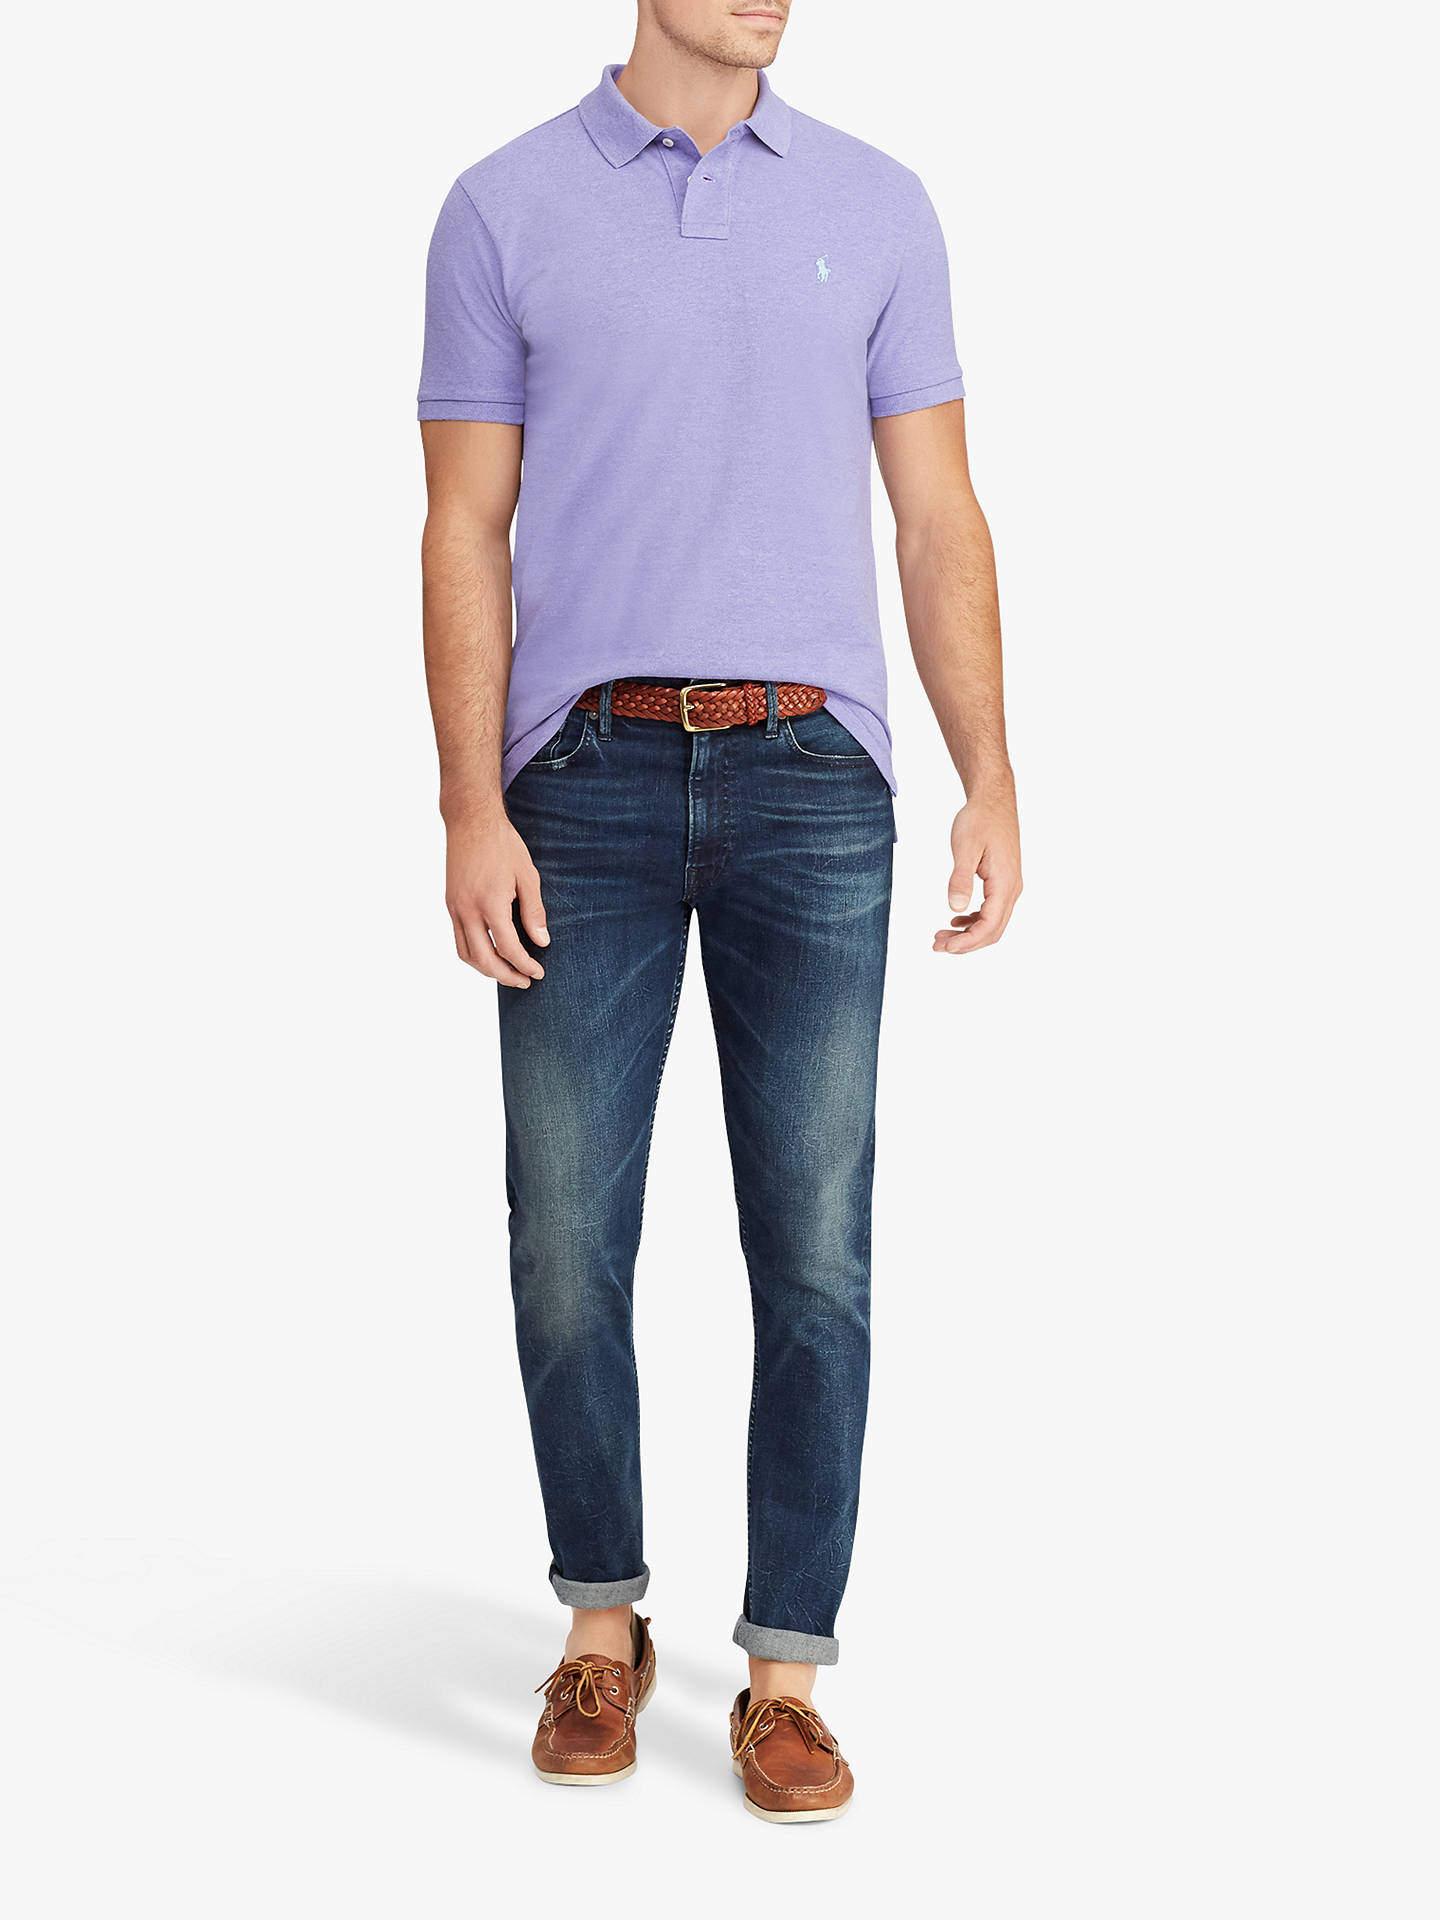 BuyPolo Ralph Lauren Short Sleeve Custom Slim Fit Mesh Polo Shirt, Purple Heather, S Online at johnlewis.com